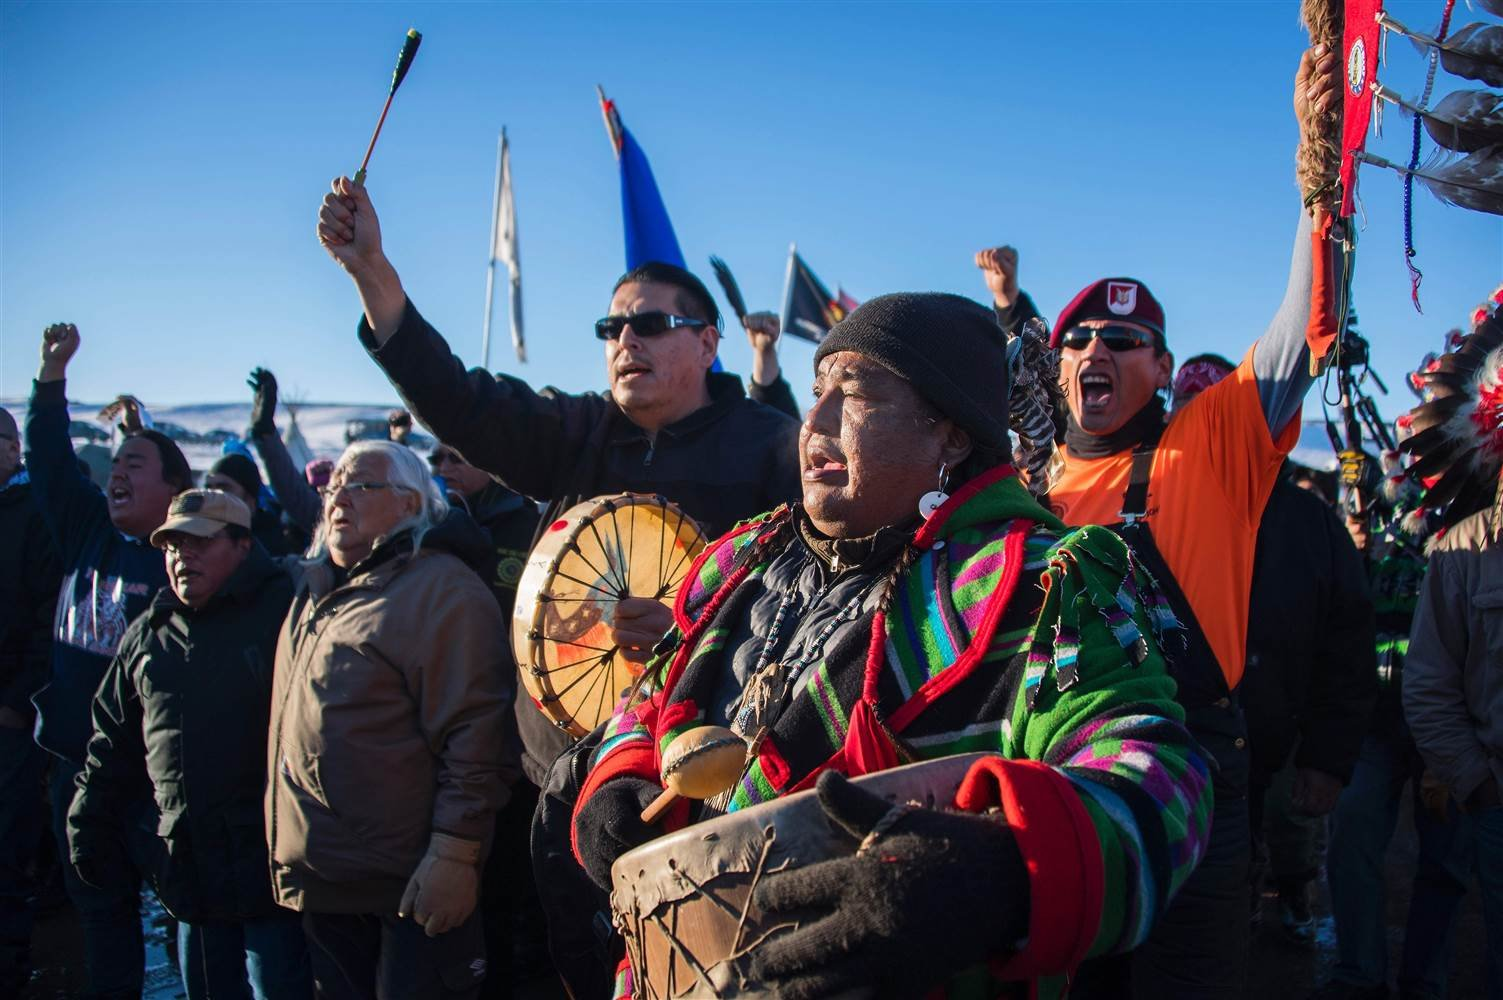 Activists celebrate at Oceti Sakowin Camp on the edge of the Standing Rock Sioux Reservation on Dec. 4, 2016 outside Cannon Ball, North Dakota, after the Army Corps of Engineers said the current route of the pipeline will be denied.